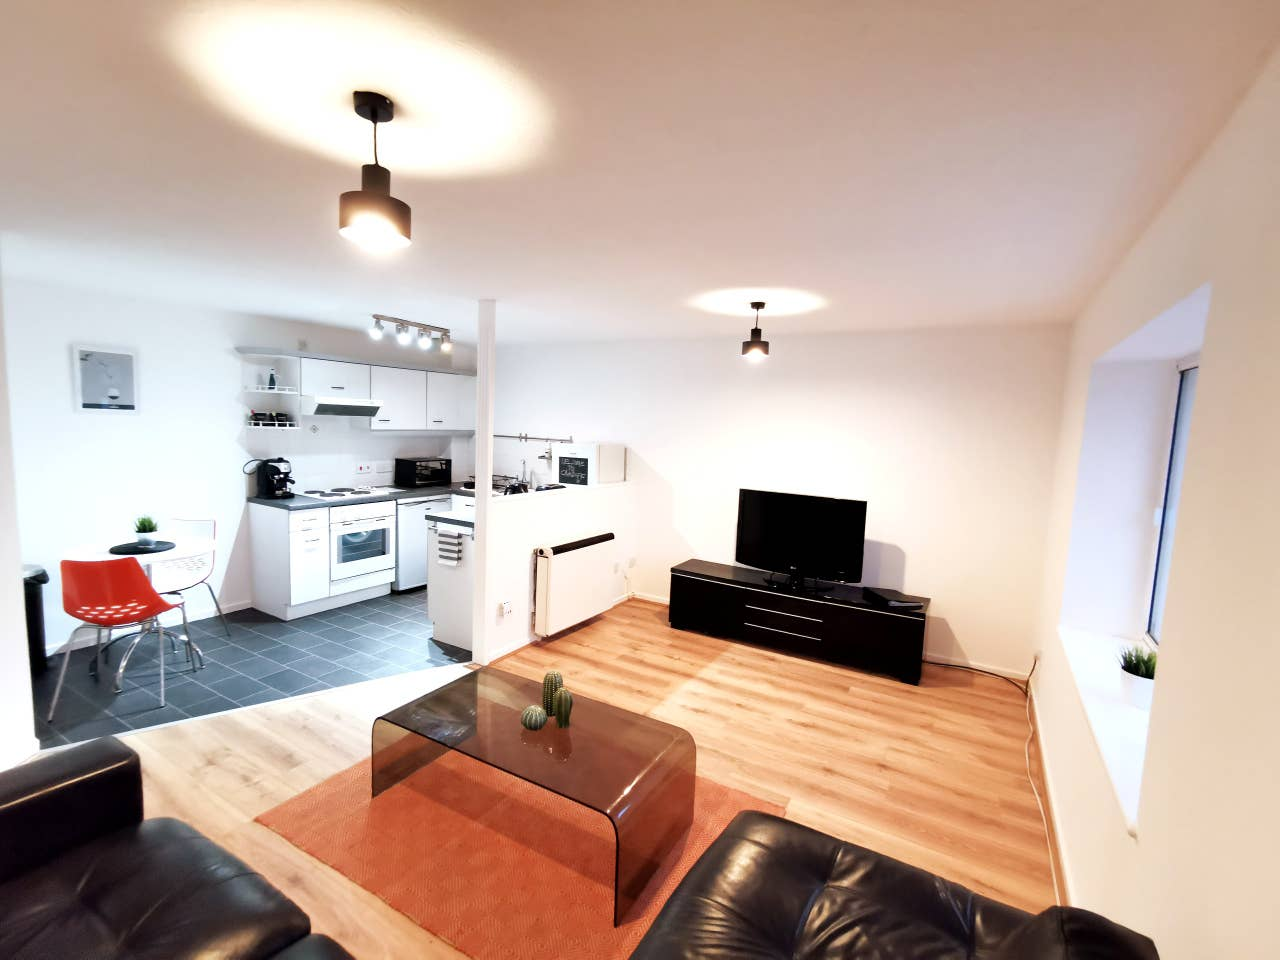 Services Apartments - apartments and houses to rent in Cardiff